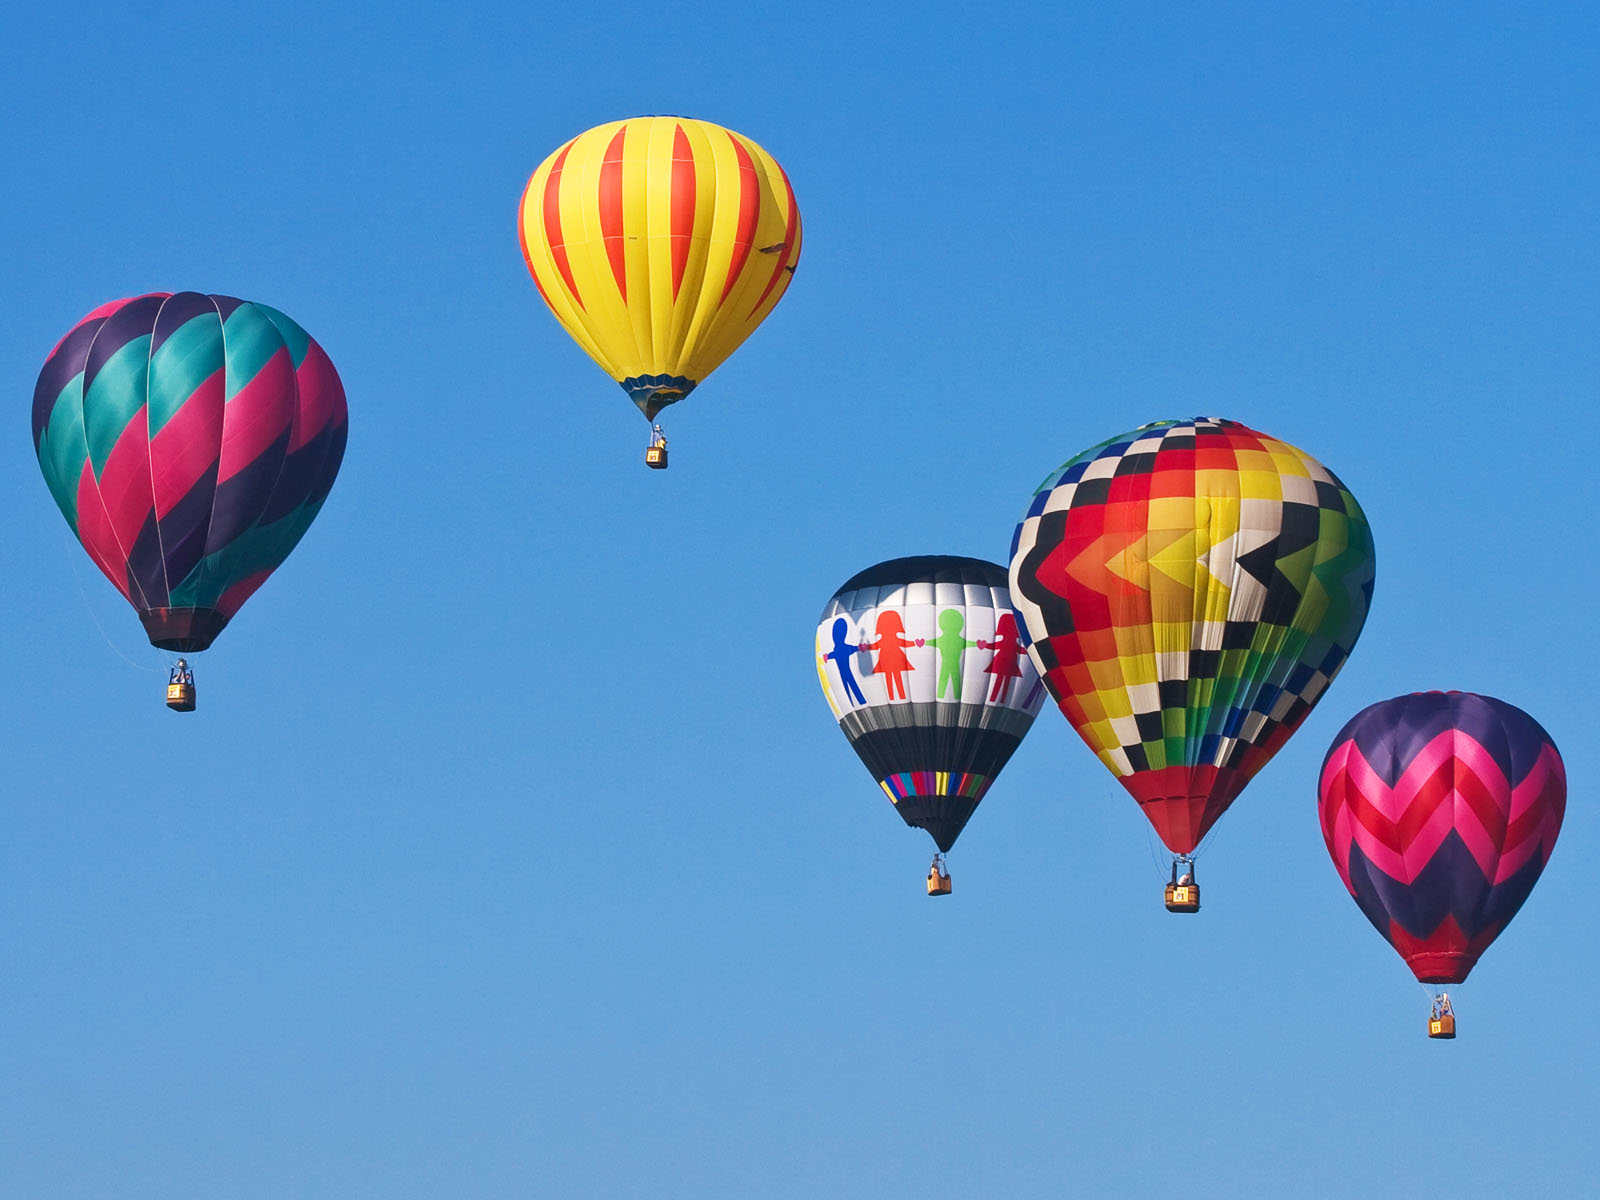 http://4.bp.blogspot.com/-hqTWK-vPYos/TrM32gimtOI/AAAAAAAADUI/7ya-sGmxaZc/s1600/1271813090_1600x1200_hot-air-balloon-wallpaper.jpg